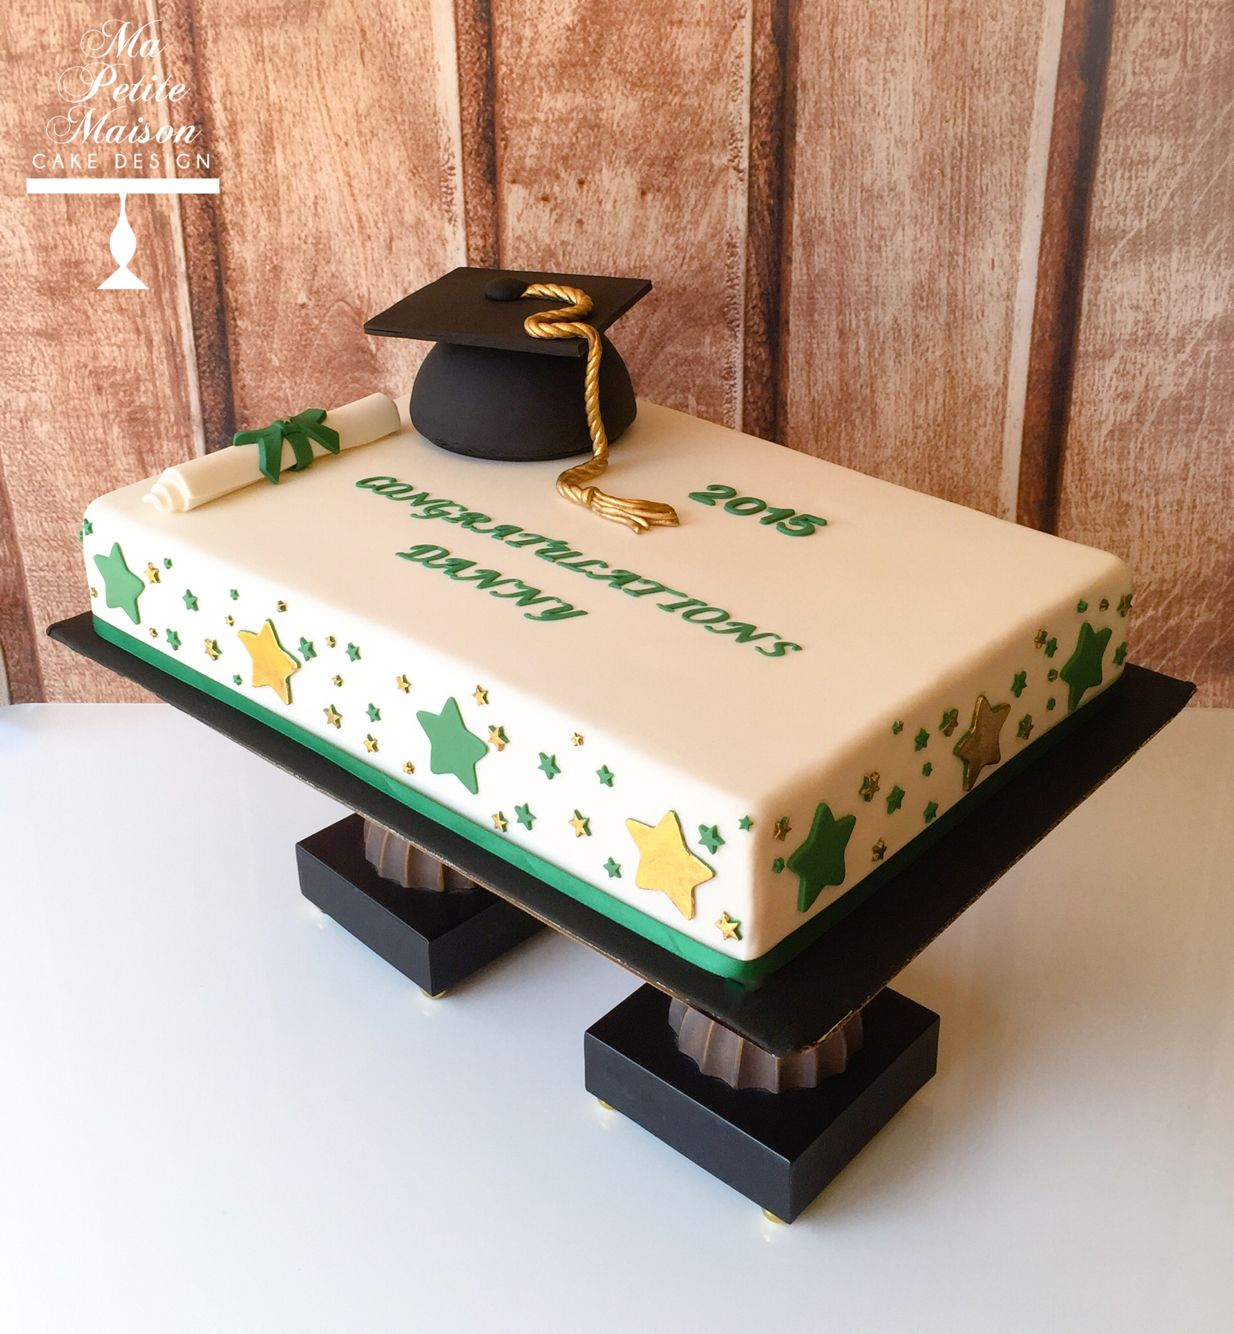 Gold And Green Fondant Rectangle Rectangular Graduation Sheet Cake With Stars Mortarboard Cap Graduation Sheet Cakes Graduation Cakes Graduation Cake Designs